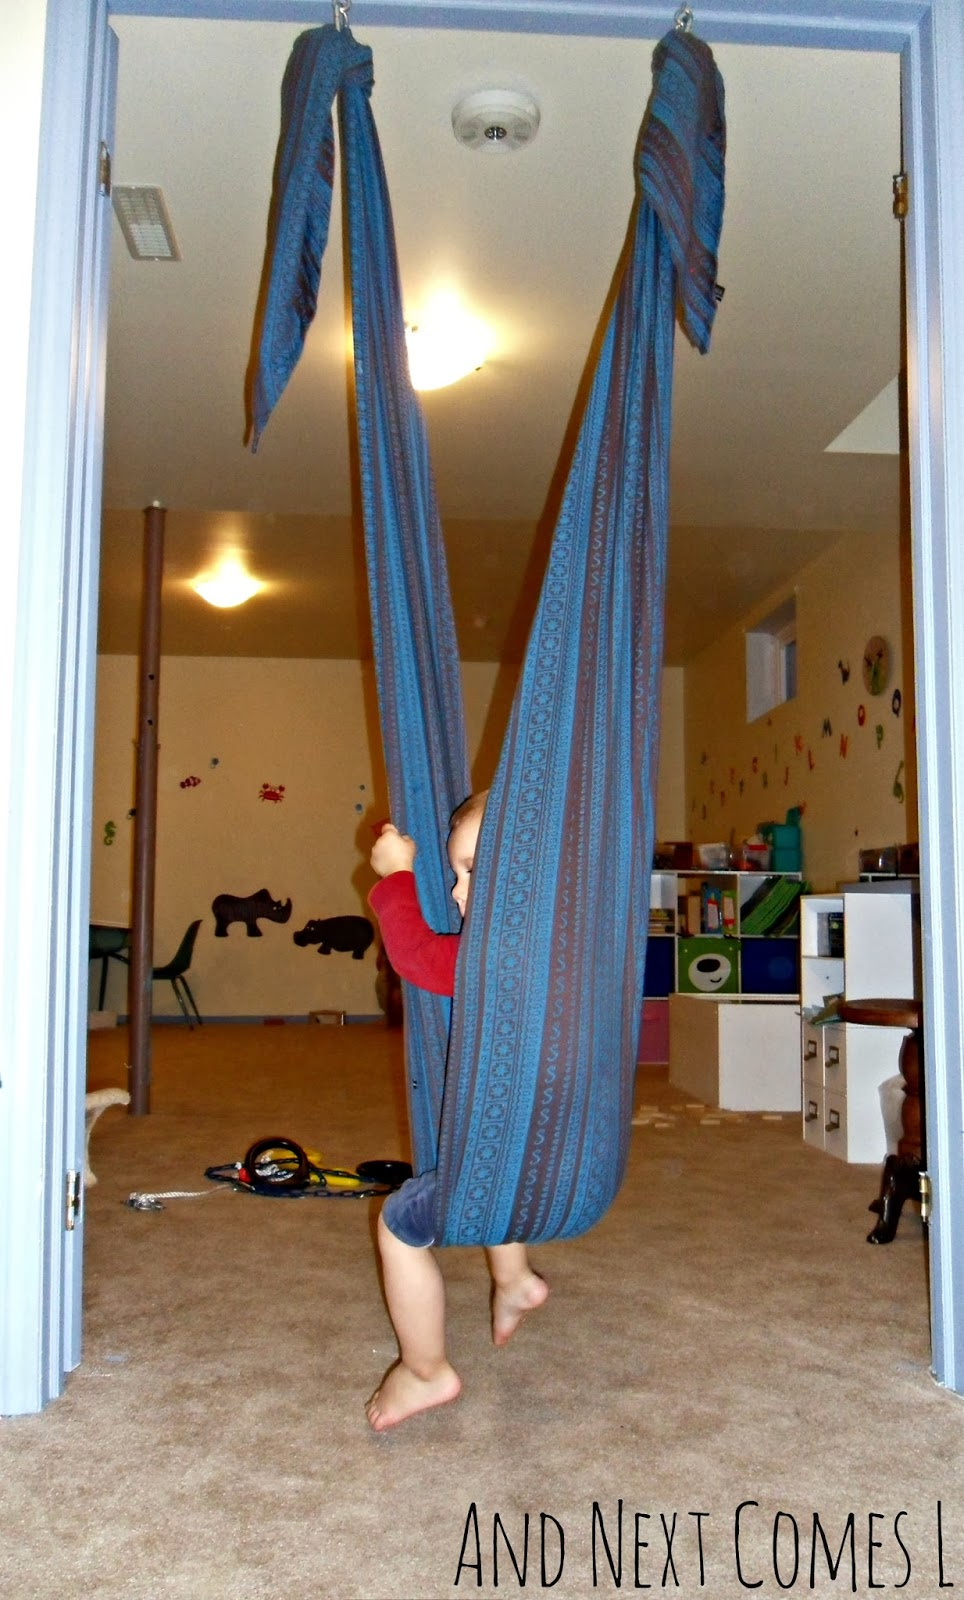 Genial Make Your Own Sensory Swing By Converting A Woven Wrap From And Next Comes L